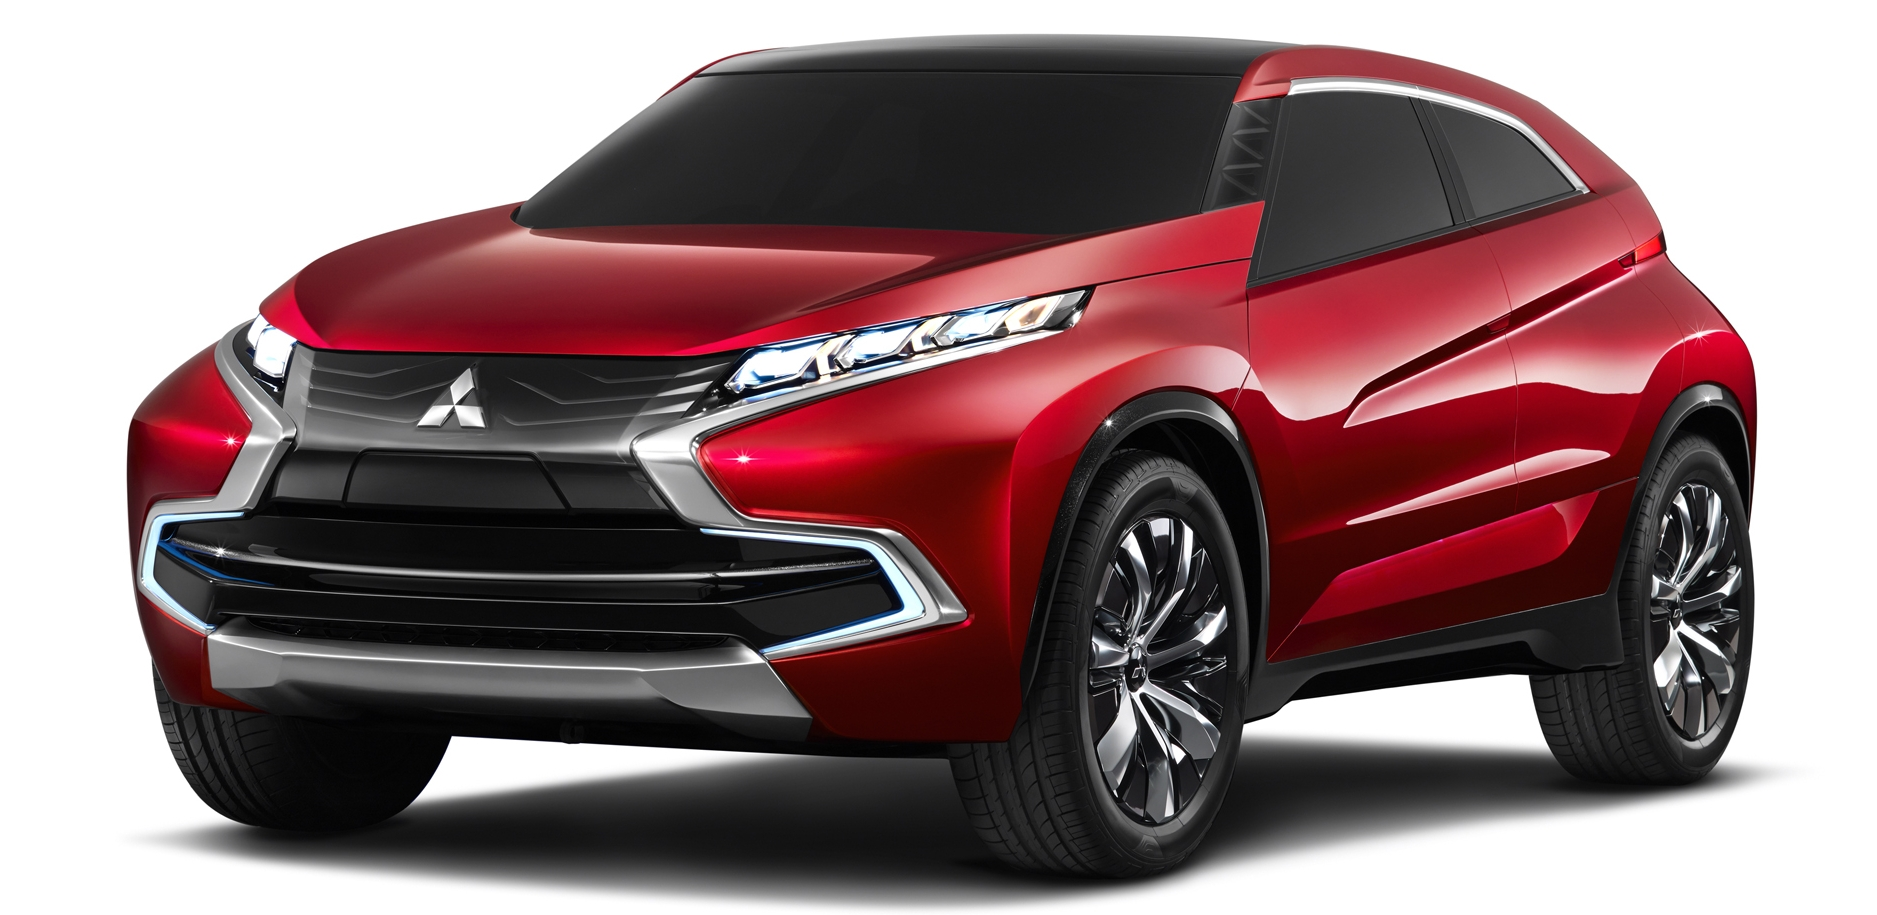 Mitsubishi Asx Concept >> Mitsubishi Concept GC-PHEV, XR-PHEV and AR – previewing the new Pajero, ASX and Grandis Image 207636